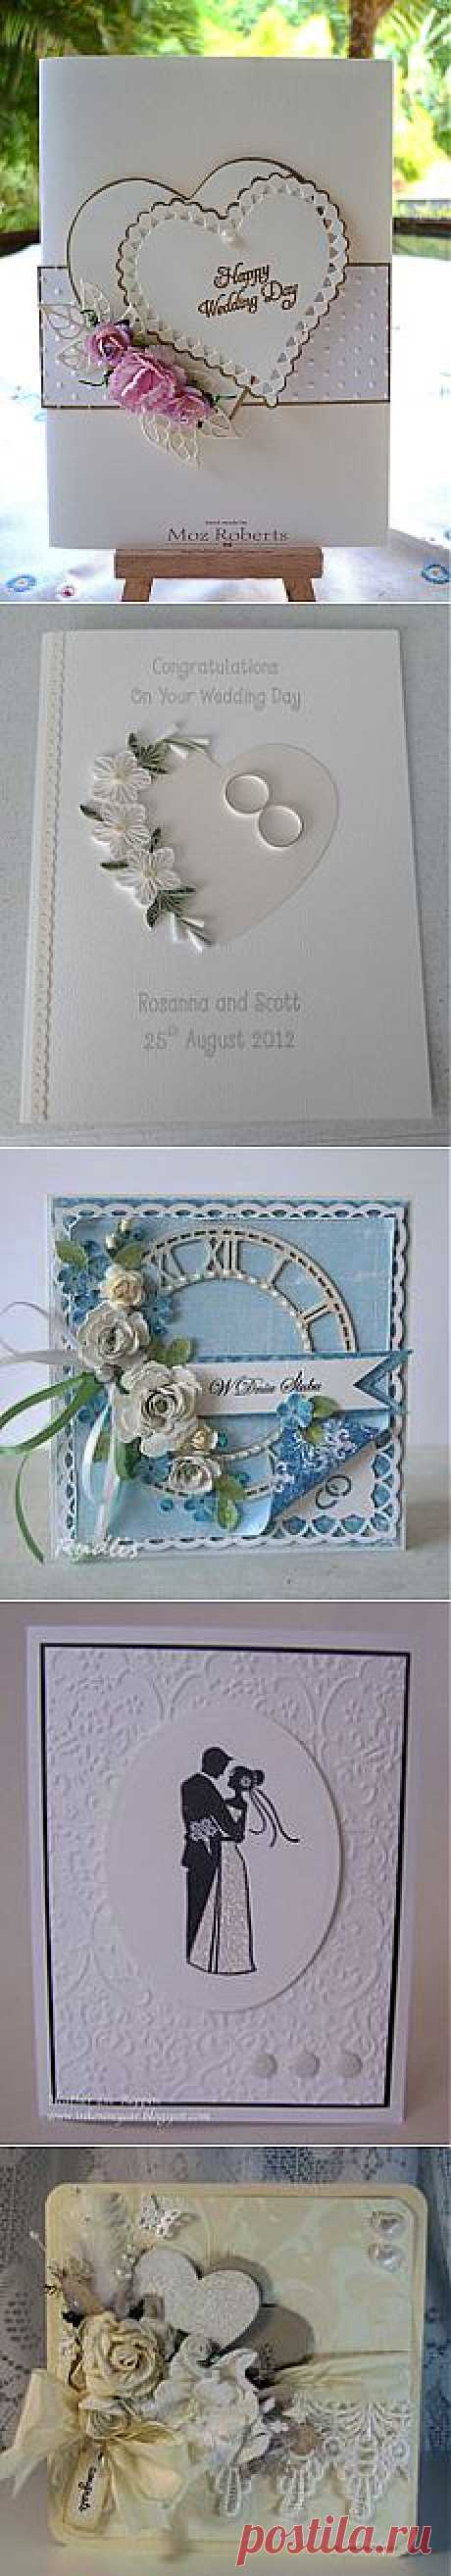 Wedding Day Card by Moz | Cards by Moz - 2013